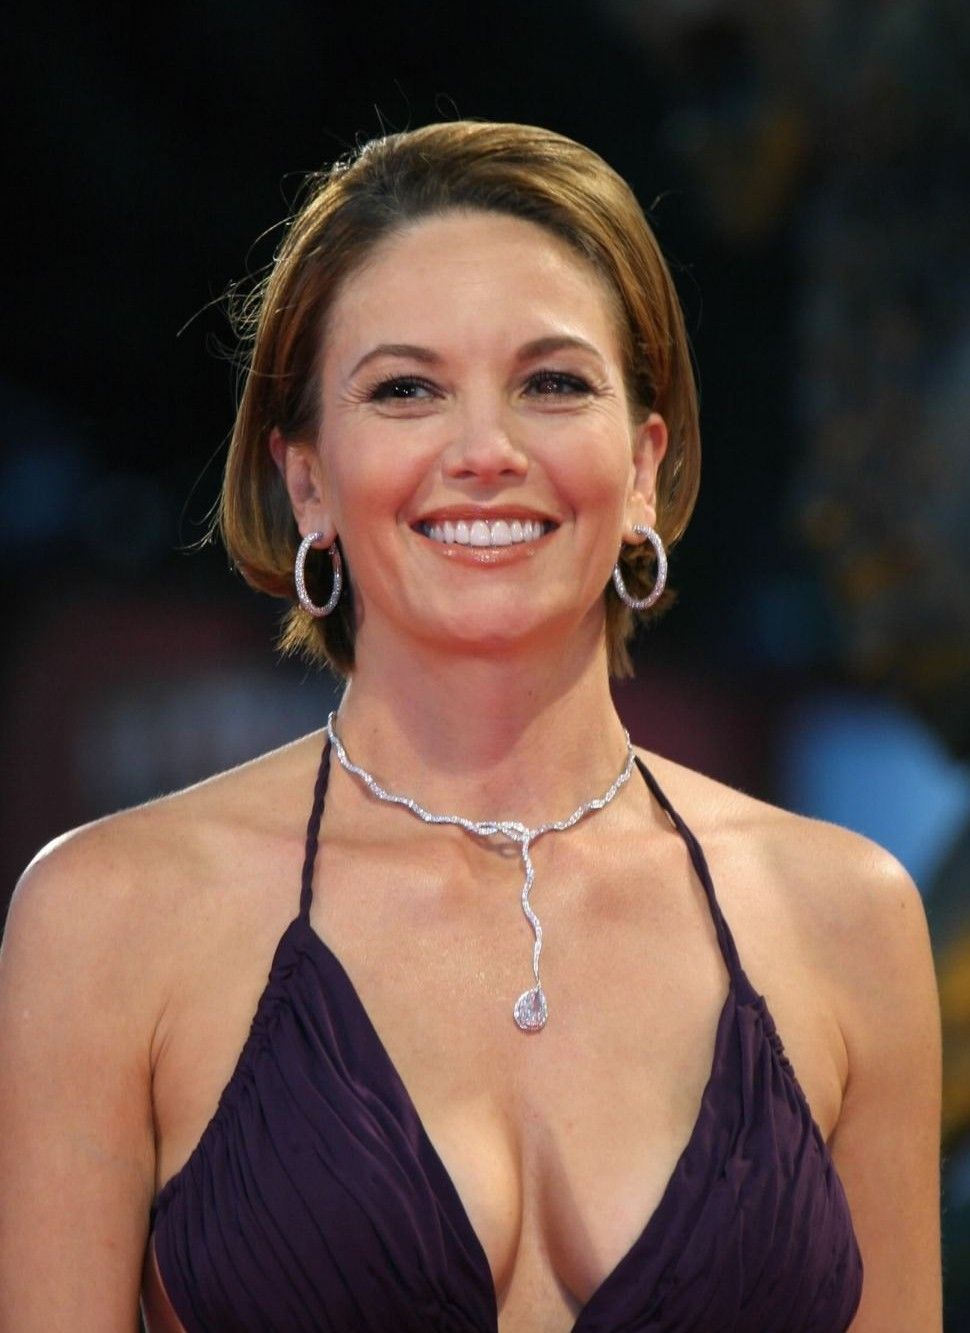 Celebrites Diane Lane nudes (71 photo), Ass, Leaked, Selfie, braless 2015